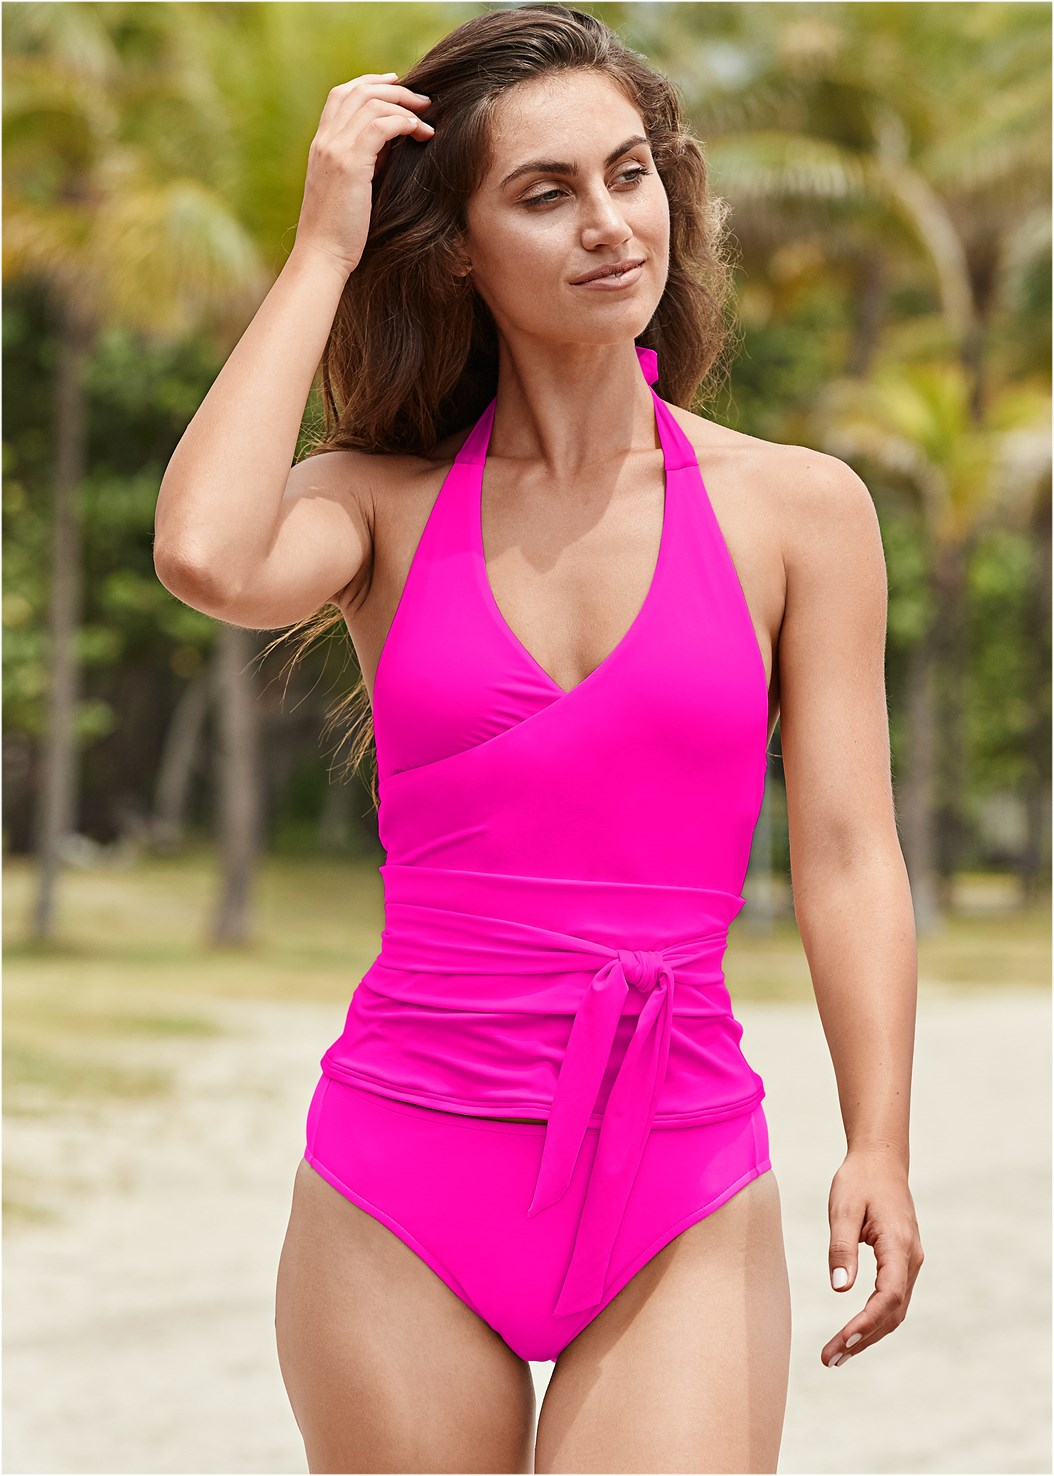 Sustainable Wrap Tankini Top,Sustainable Tie Side Bottom